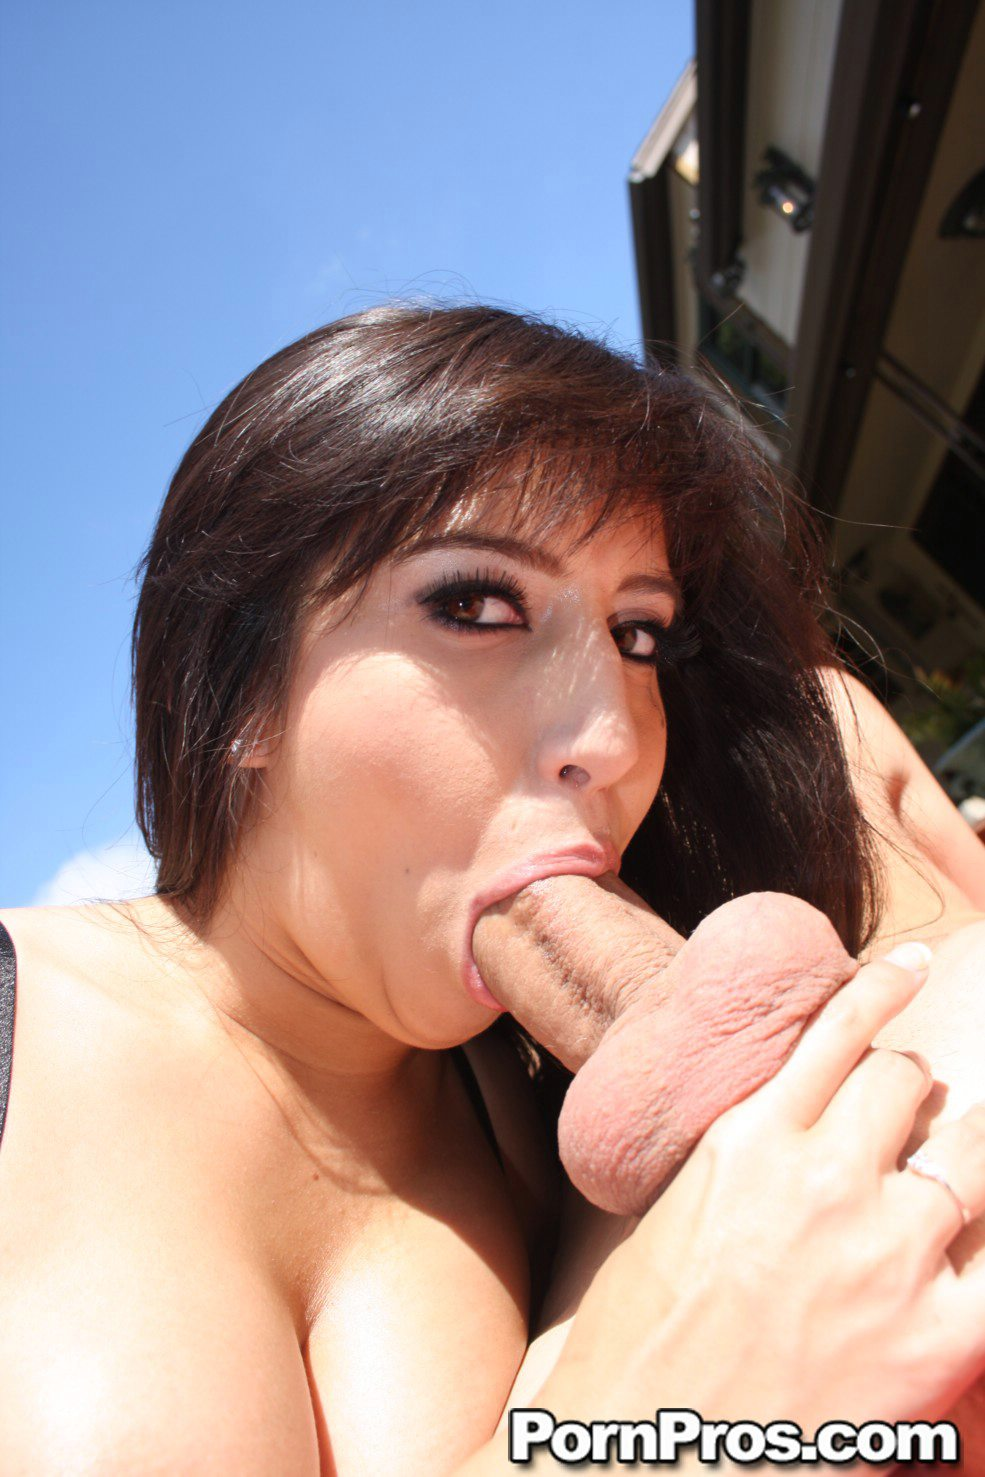 April oneil cumshot porn video